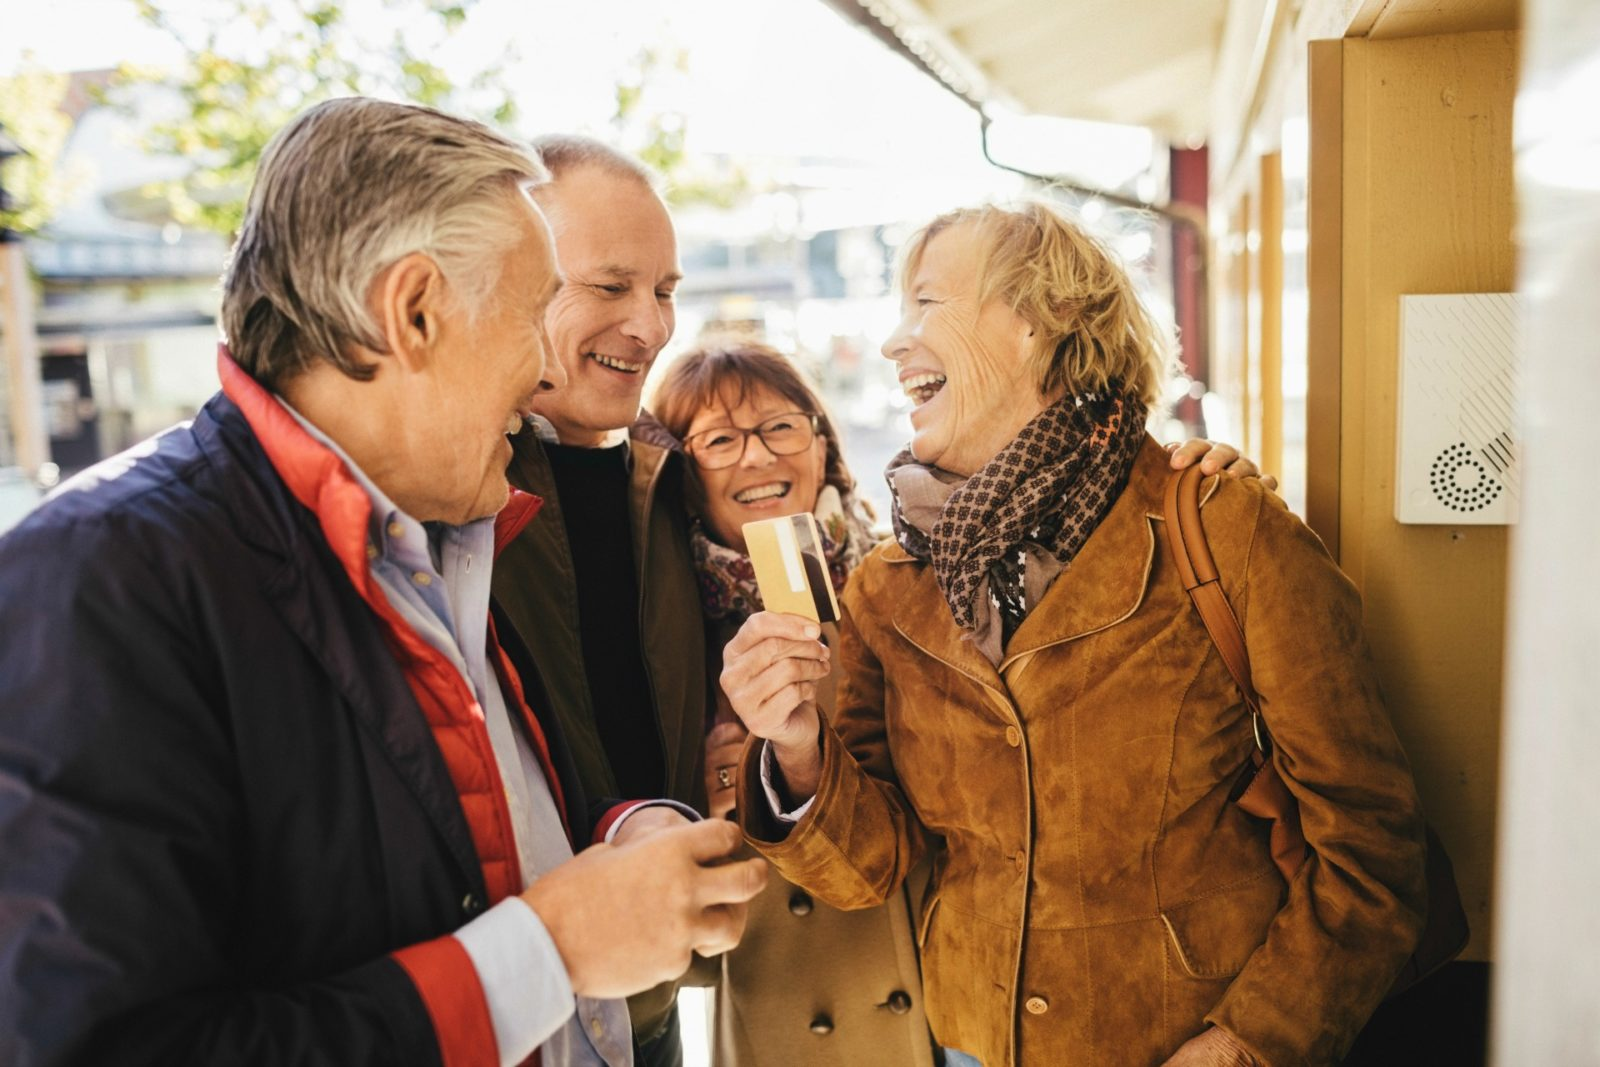 Staying social in older life can give people a purpose.